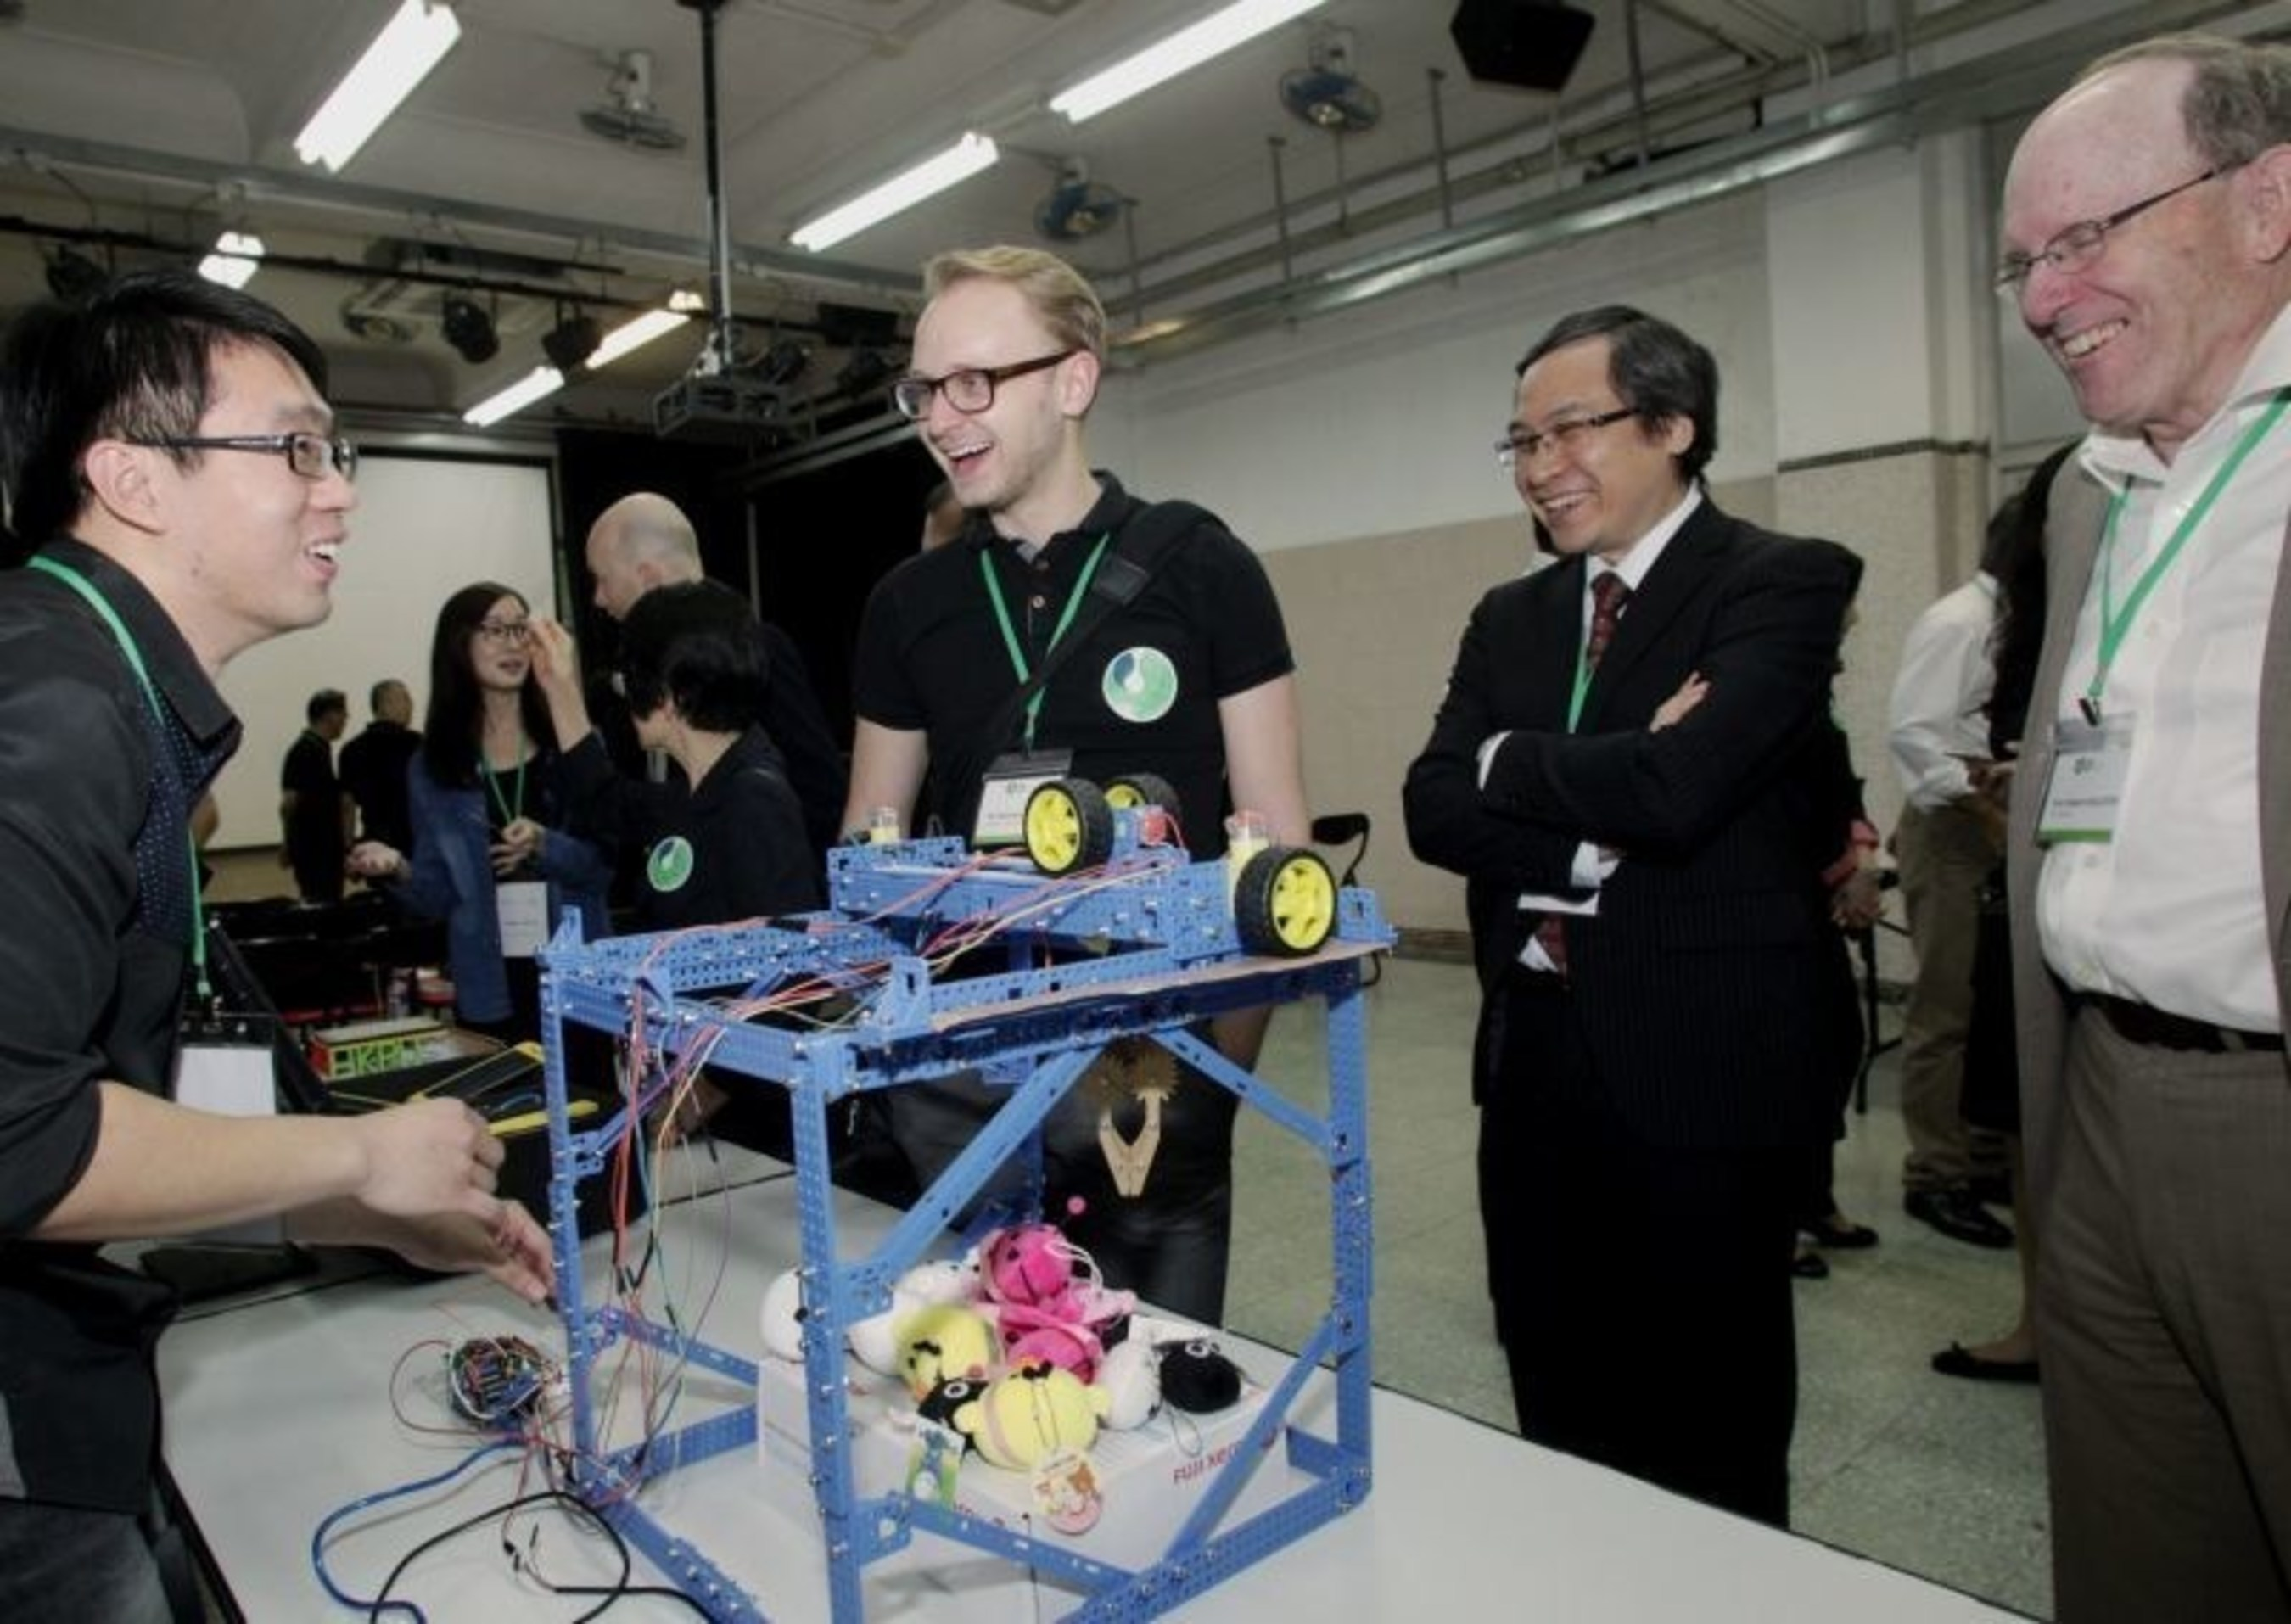 The Network delegates visited Aberdeen Technical School to understand the holistic education that PolyU provides to its students as a PolyU Service-Learning subject to collaborate with secondary schools in Hong Kong. (PRNewsFoto/The Hong Kong Polytechnic Univer) (PRNewsFoto/The Hong Kong Polytechnic Univer)